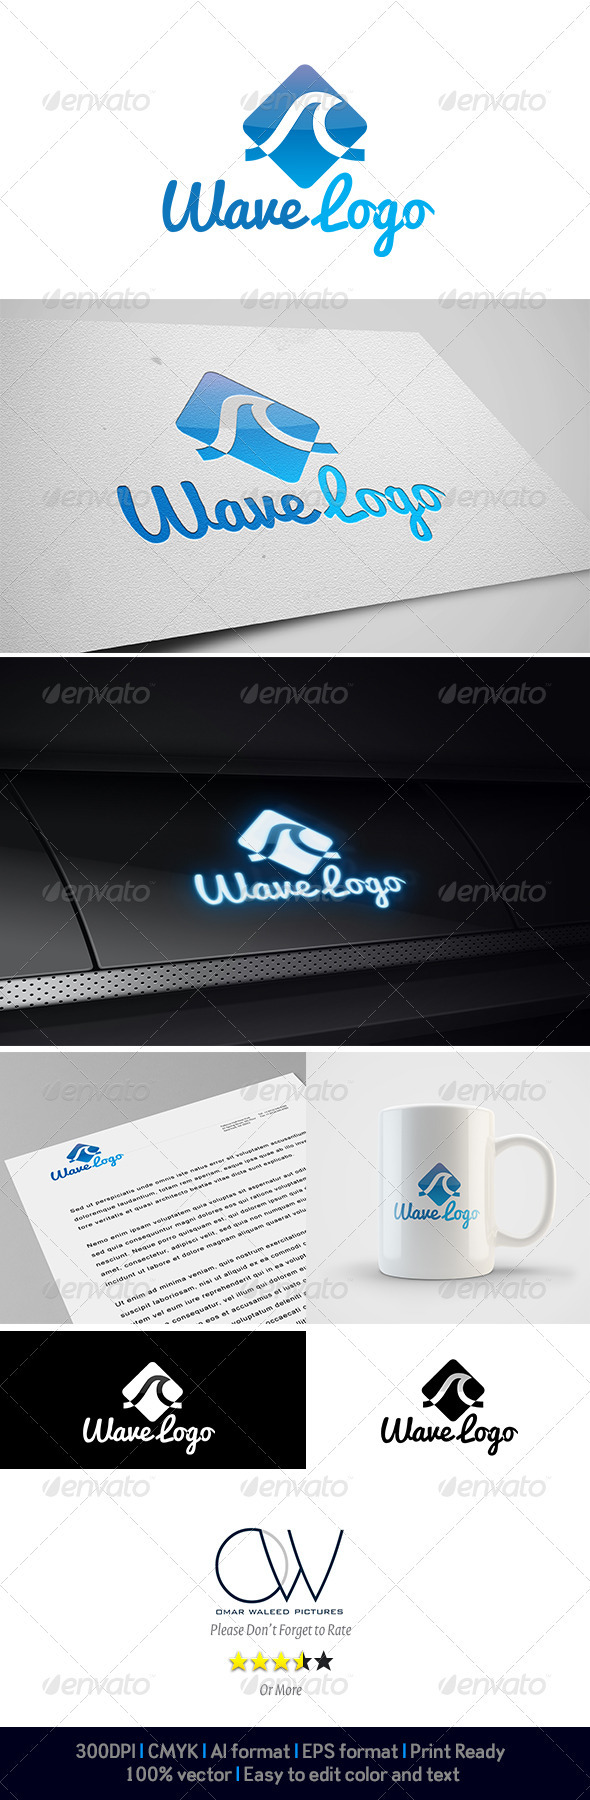 Wave Logo - Abstract Logo Templates